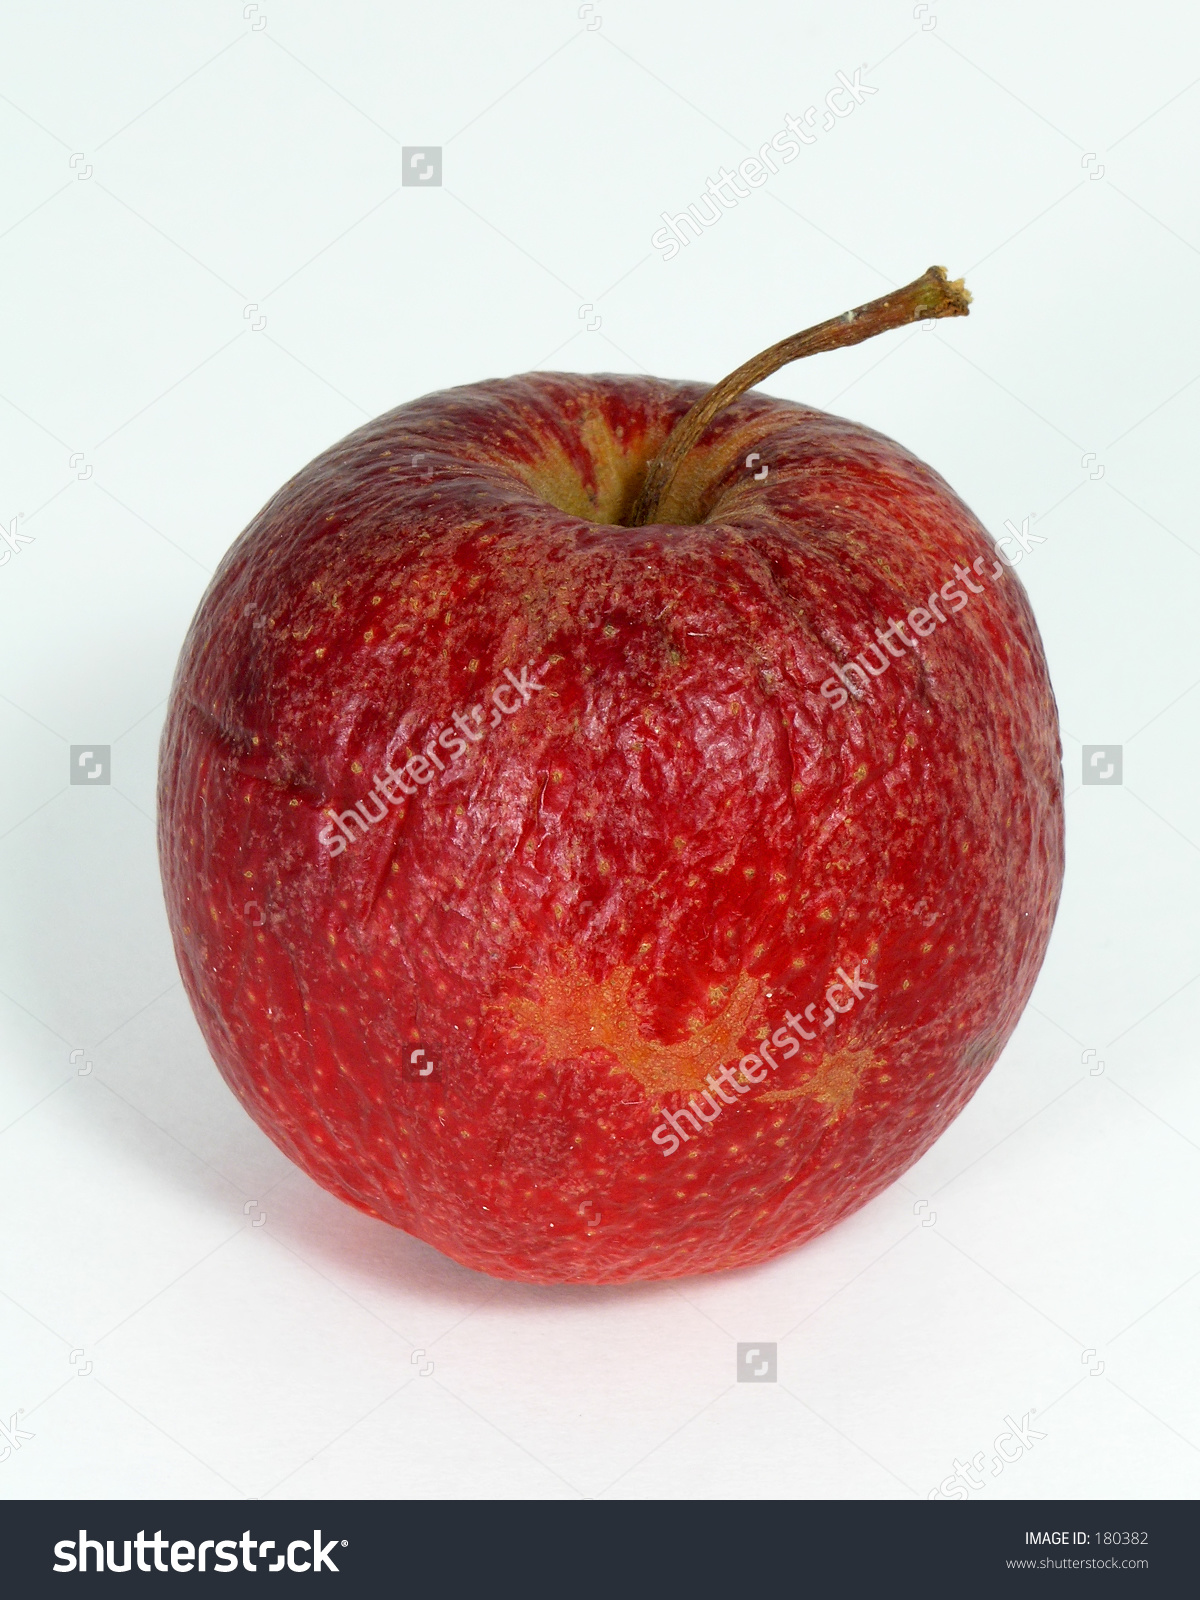 Shriveled Apple Stock Photo 180382 : Shutterstock.